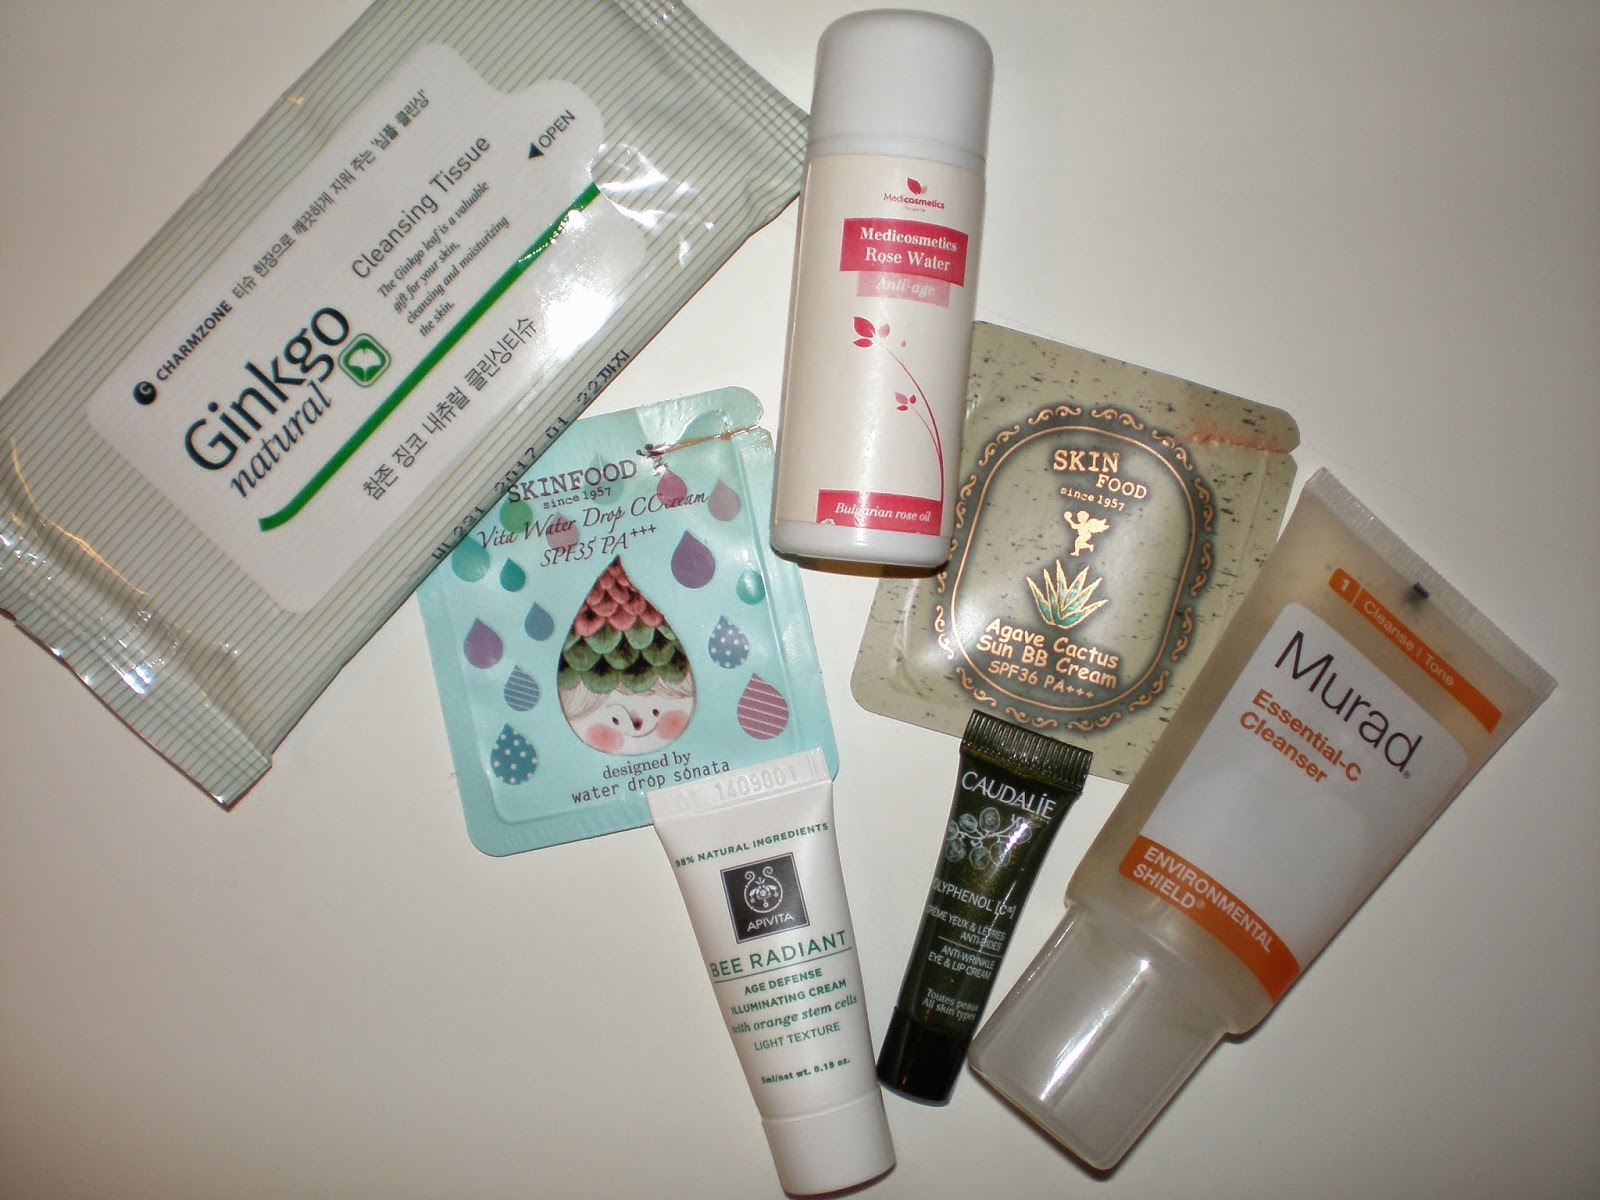 Beauty samples I used up in my trip to Galaxidi